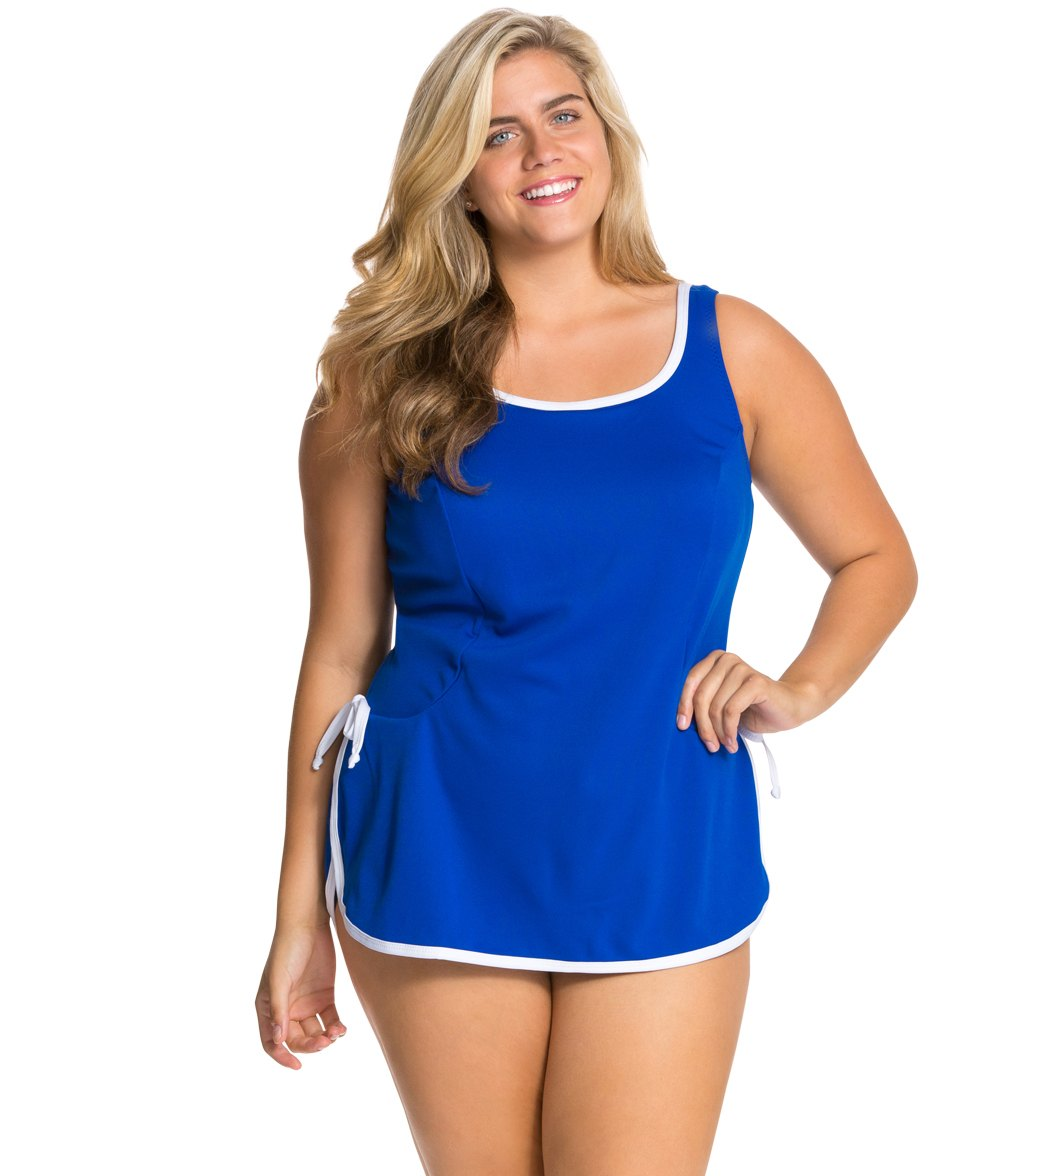 bdc22fedc4 Tuffy Plus Size Chlorine Resistant Polyester Tie Side Swim Dress at  SwimOutlet.com - Free Shipping